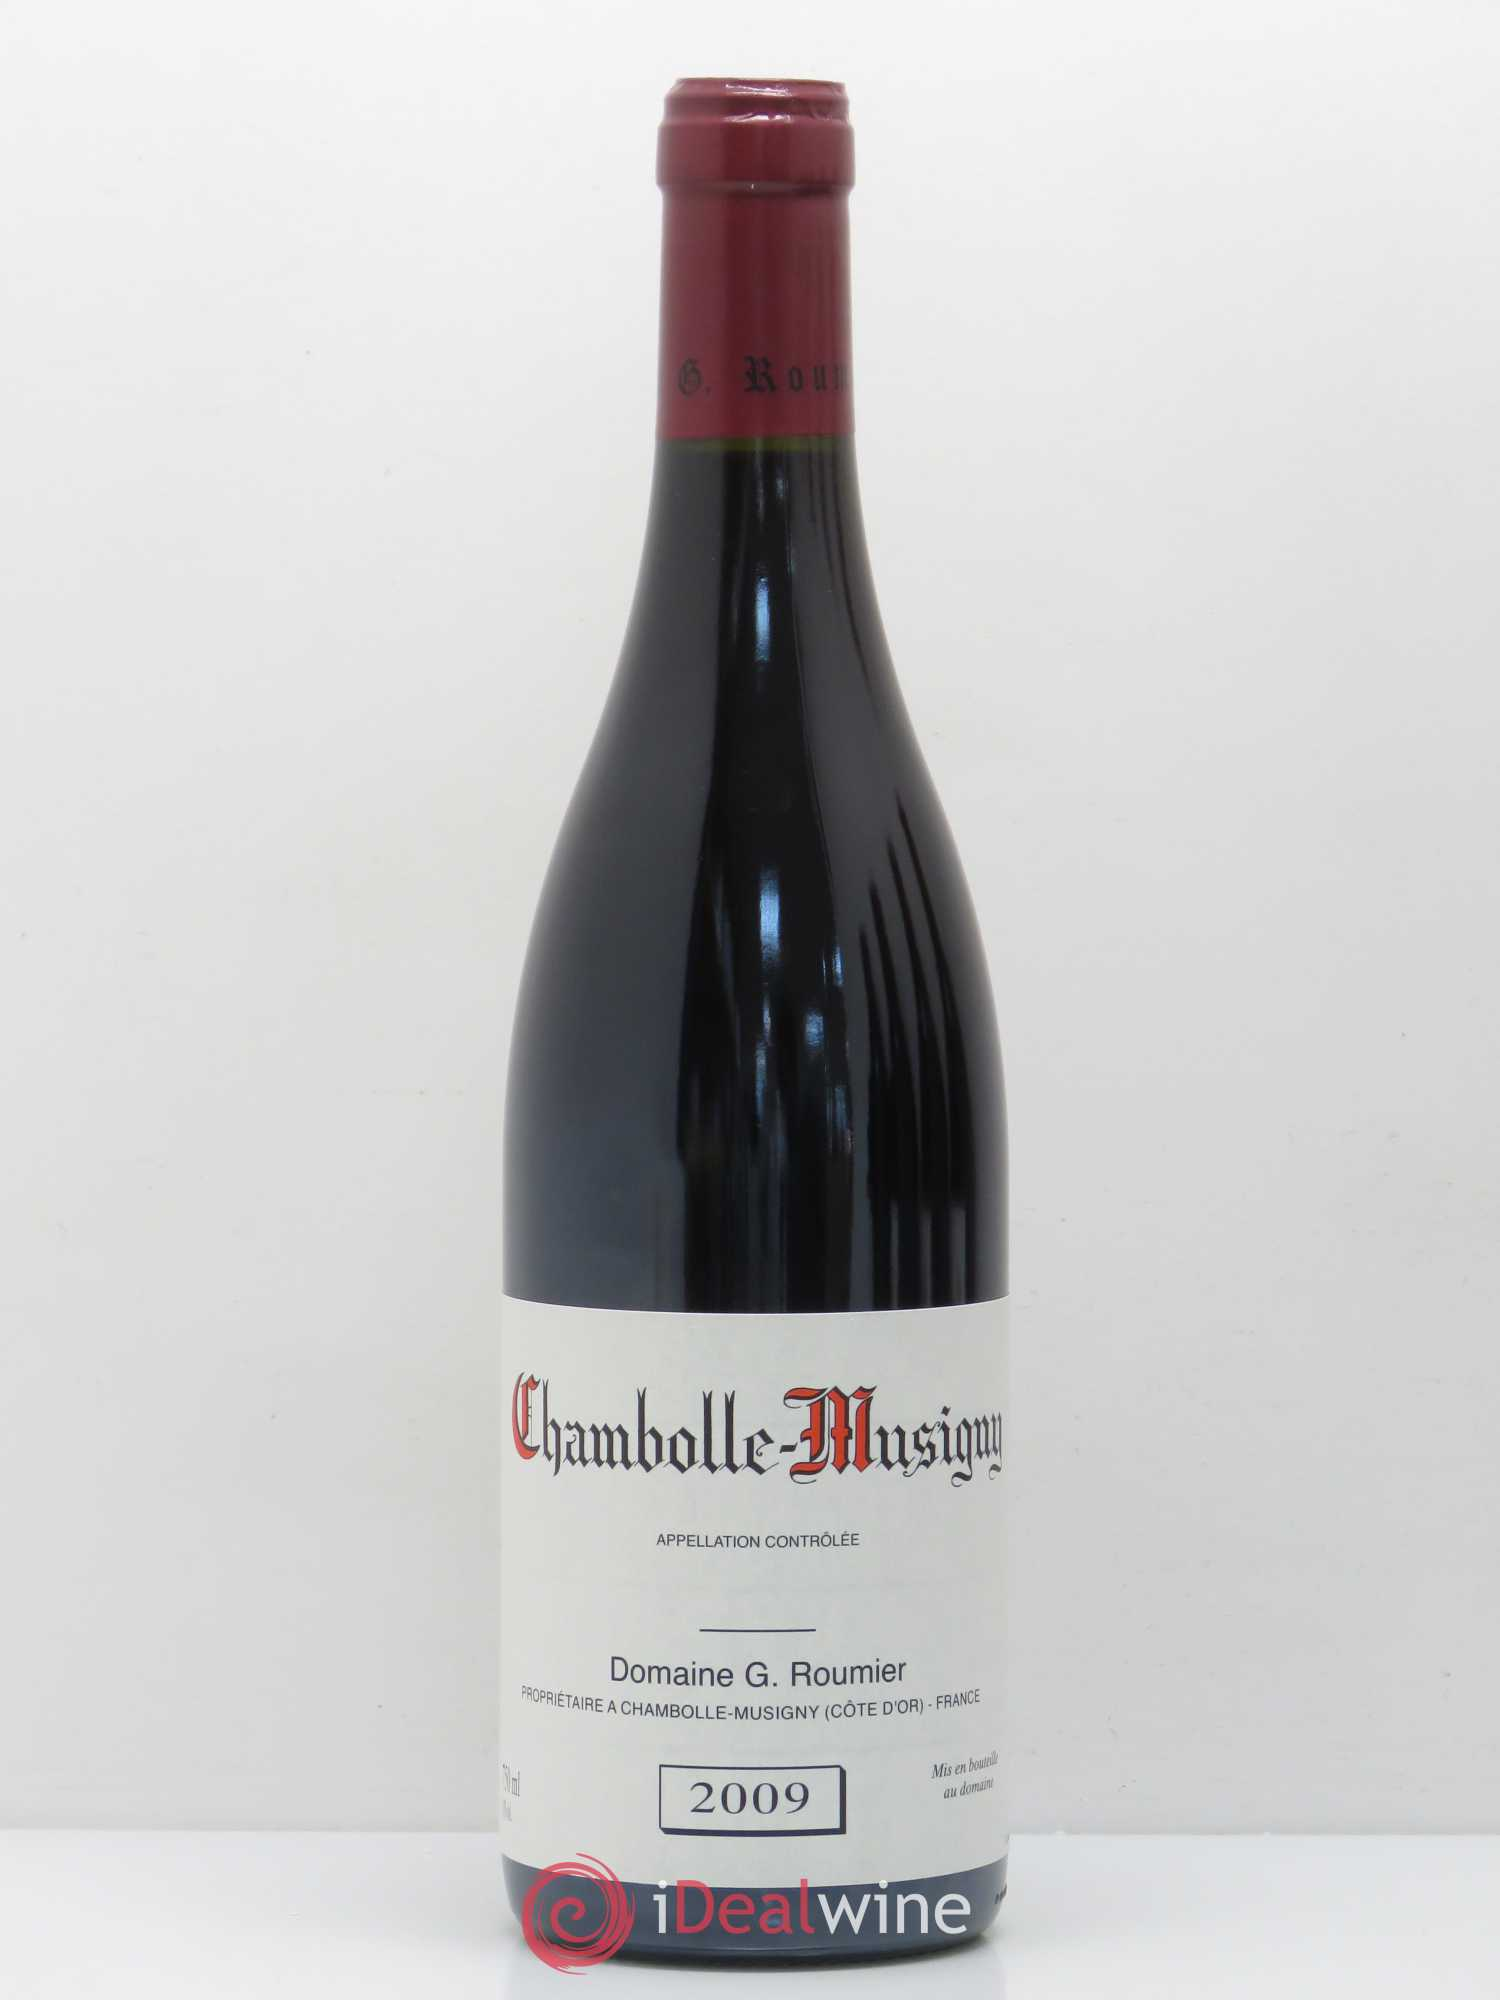 Chambolle-Musigny Georges Roumier (Domaine)  2009 - Lot de 1 Bouteille